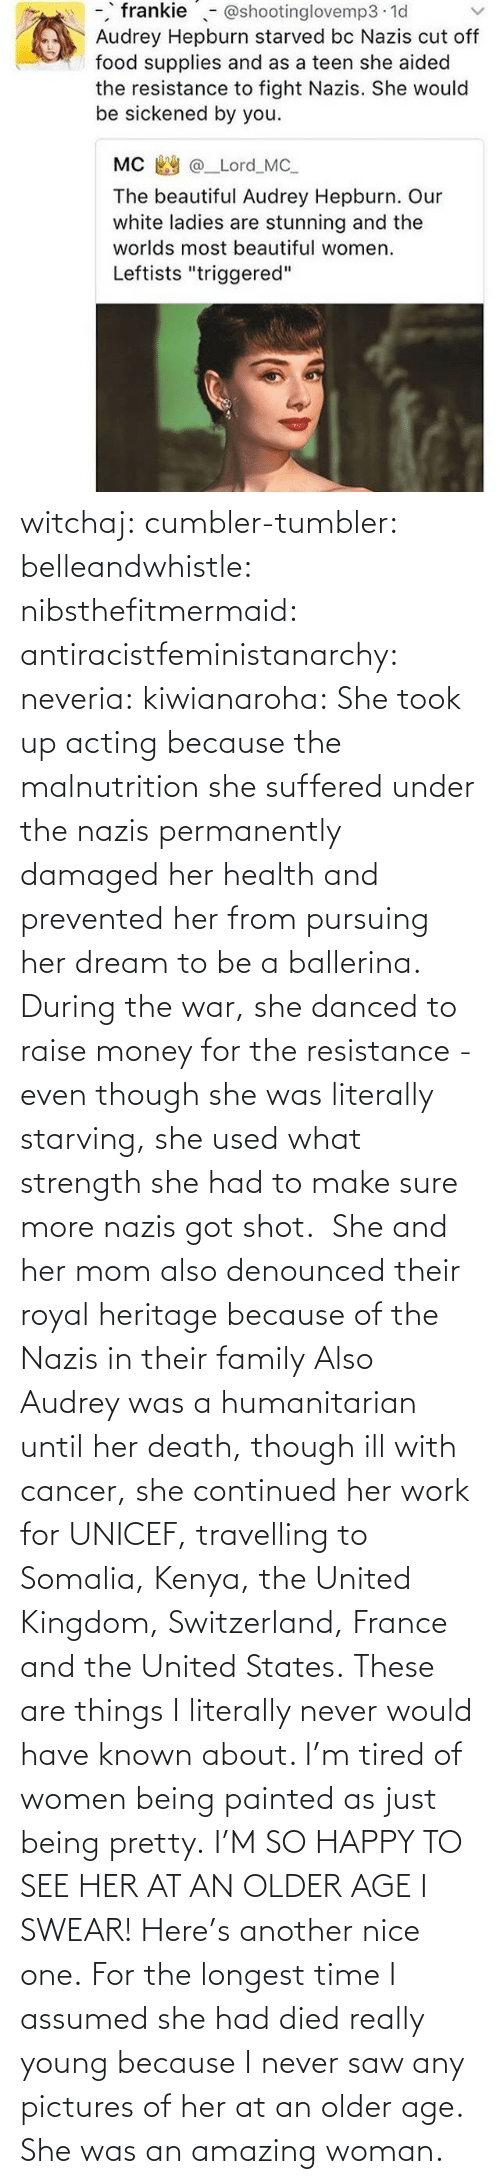 swear: witchaj: cumbler-tumbler:  belleandwhistle:  nibsthefitmermaid:  antiracistfeministanarchy:  neveria:  kiwianaroha: She took up acting because the malnutrition she suffered under the nazis permanently damaged her health and prevented her from pursuing her dream to be a ballerina. During the war, she danced to raise money for the resistance - even though she was literally starving, she used what strength she had to make sure more nazis got shot.  She and her mom also denounced their royal heritage because of the Nazis in their family  Also Audrey was a humanitarian until her death, though ill with cancer, she continued her work for UNICEF, travelling to Somalia, Kenya, the United Kingdom, Switzerland, France and the United States.  These are things I literally never would have known about. I'm tired of women being painted as just being pretty.  I'M SO HAPPY TO SEE HER AT AN OLDER AGE I SWEAR!  Here's another nice one.   For the longest time I assumed she had died really young because I never saw any pictures of her at an older age.  She was an amazing woman.